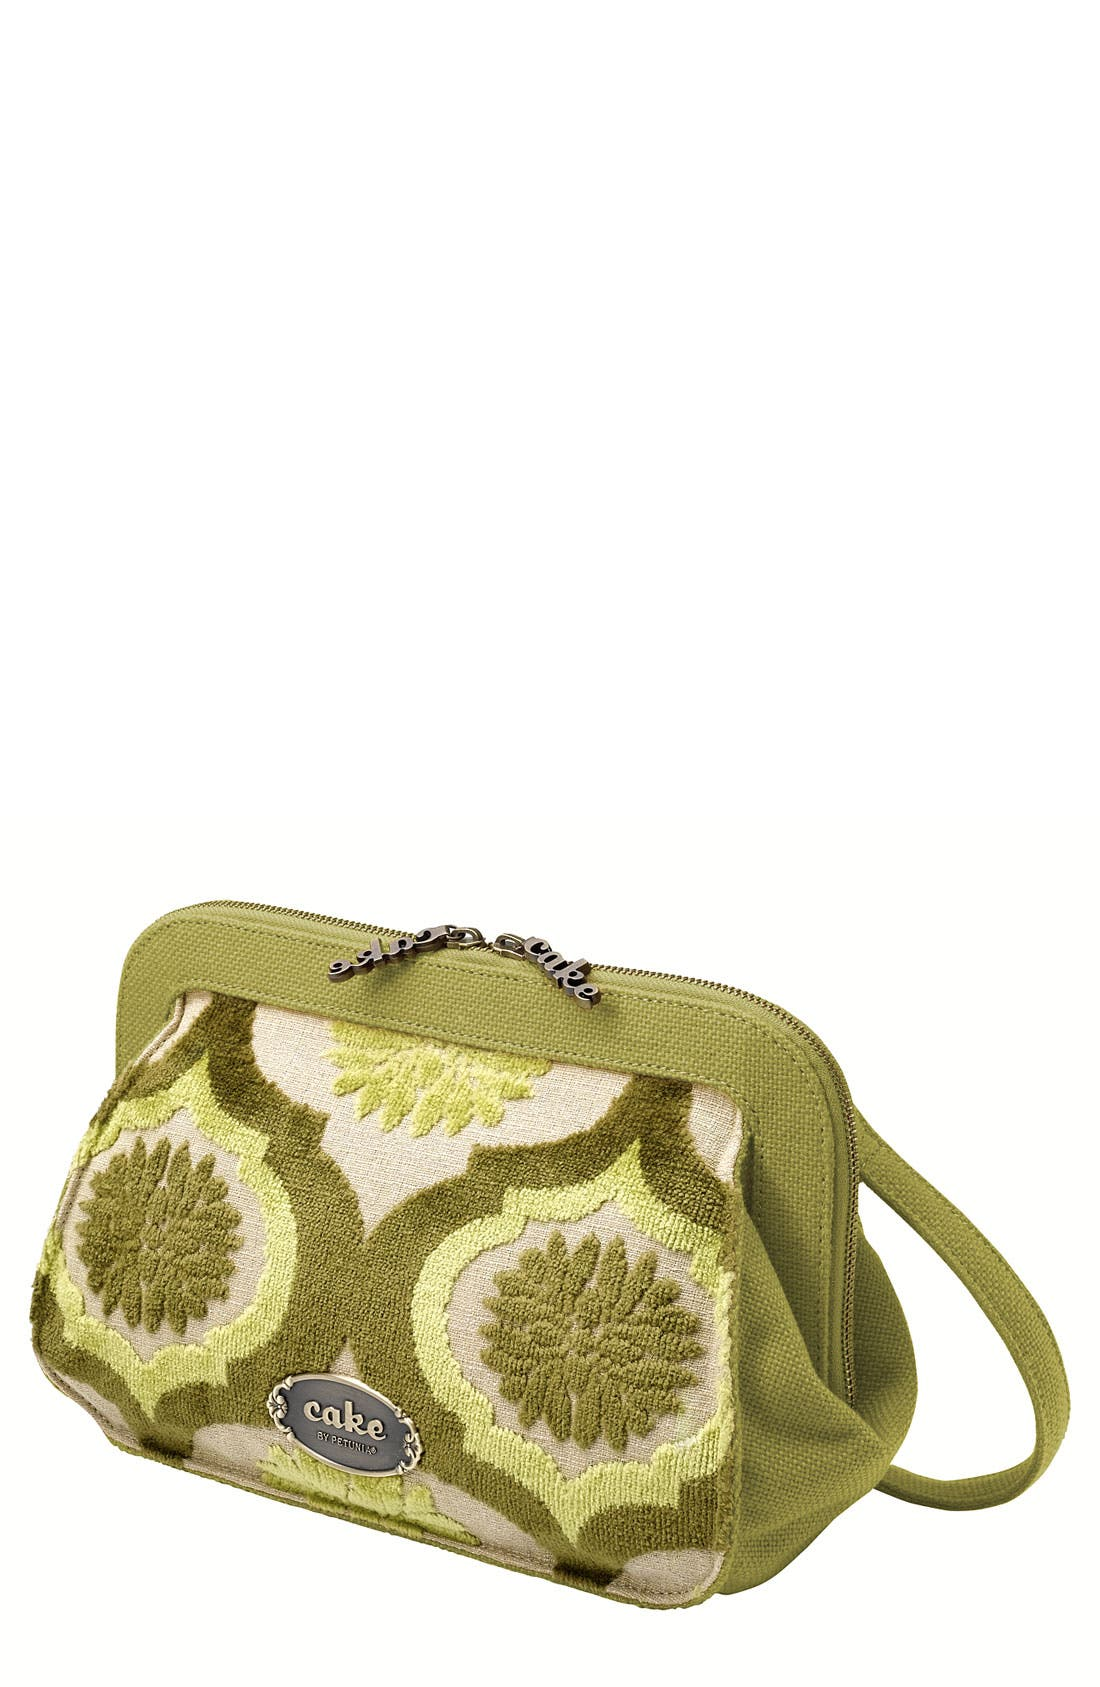 Alternate Image 1 Selected - Petunia Pickle Bottom 'Cameo - Cake' Clutch